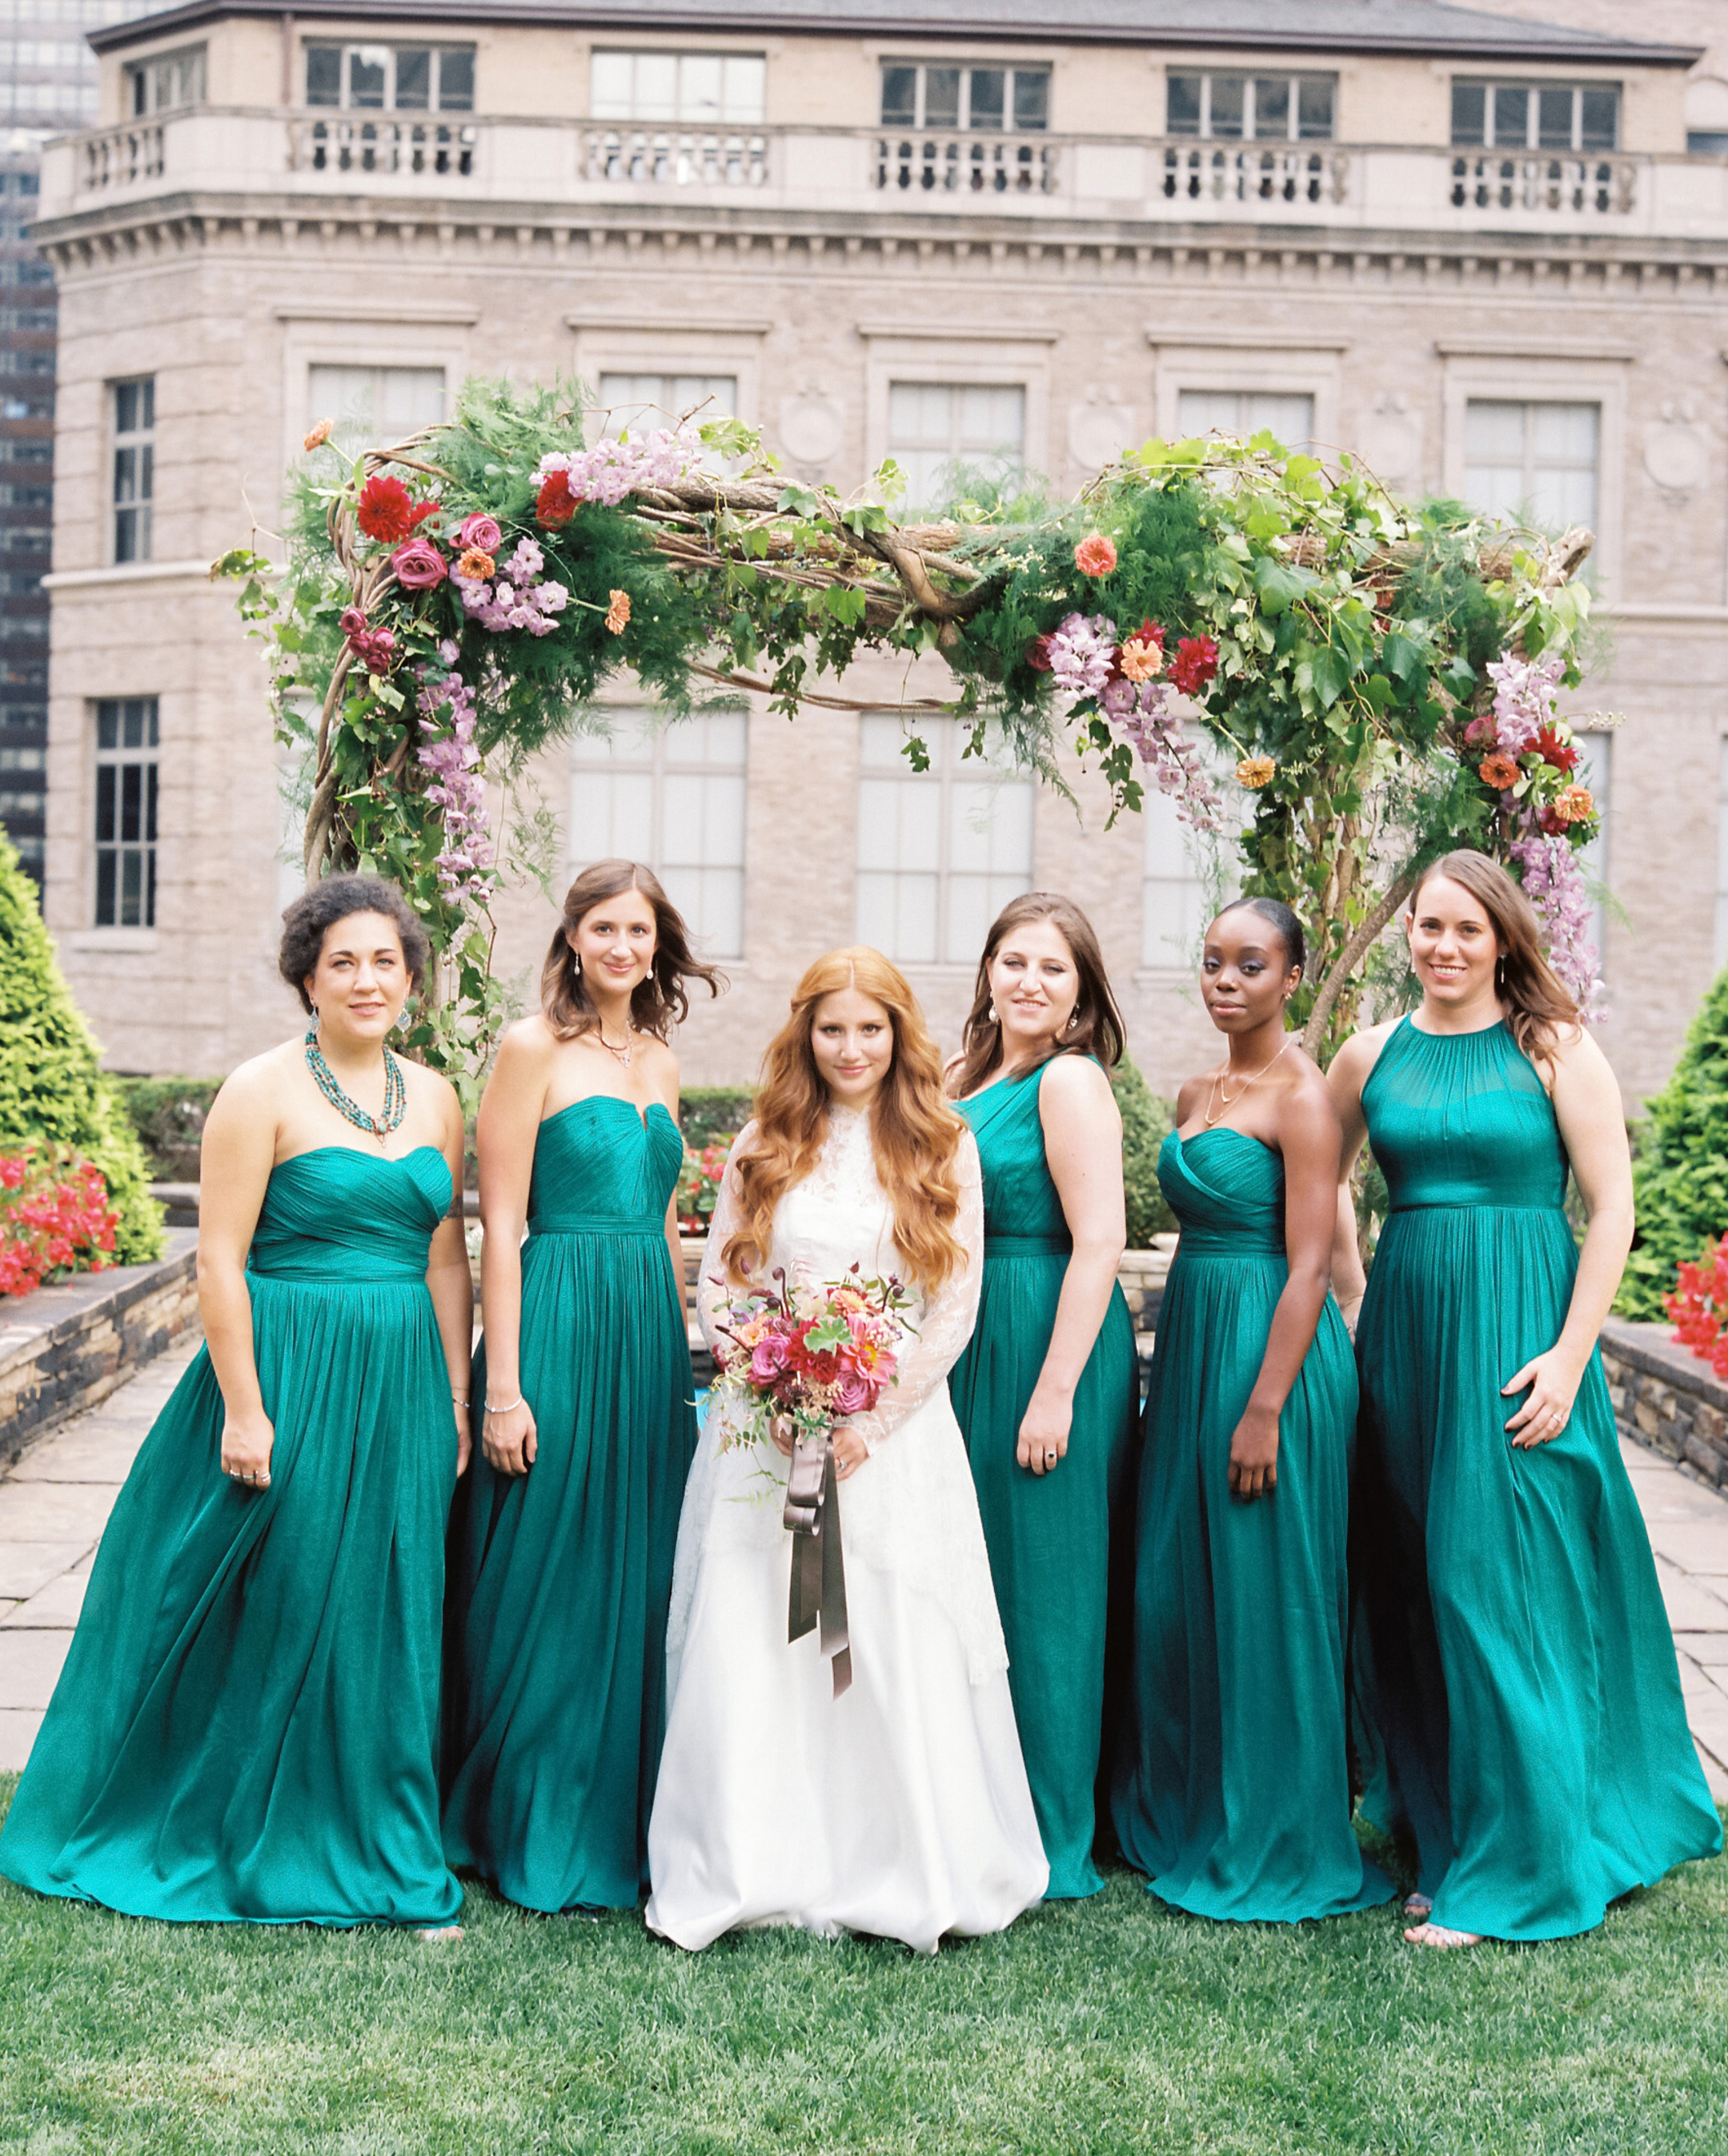 lilly-sean-wedding-bridesmaids-00195-s112089-0815.jpg